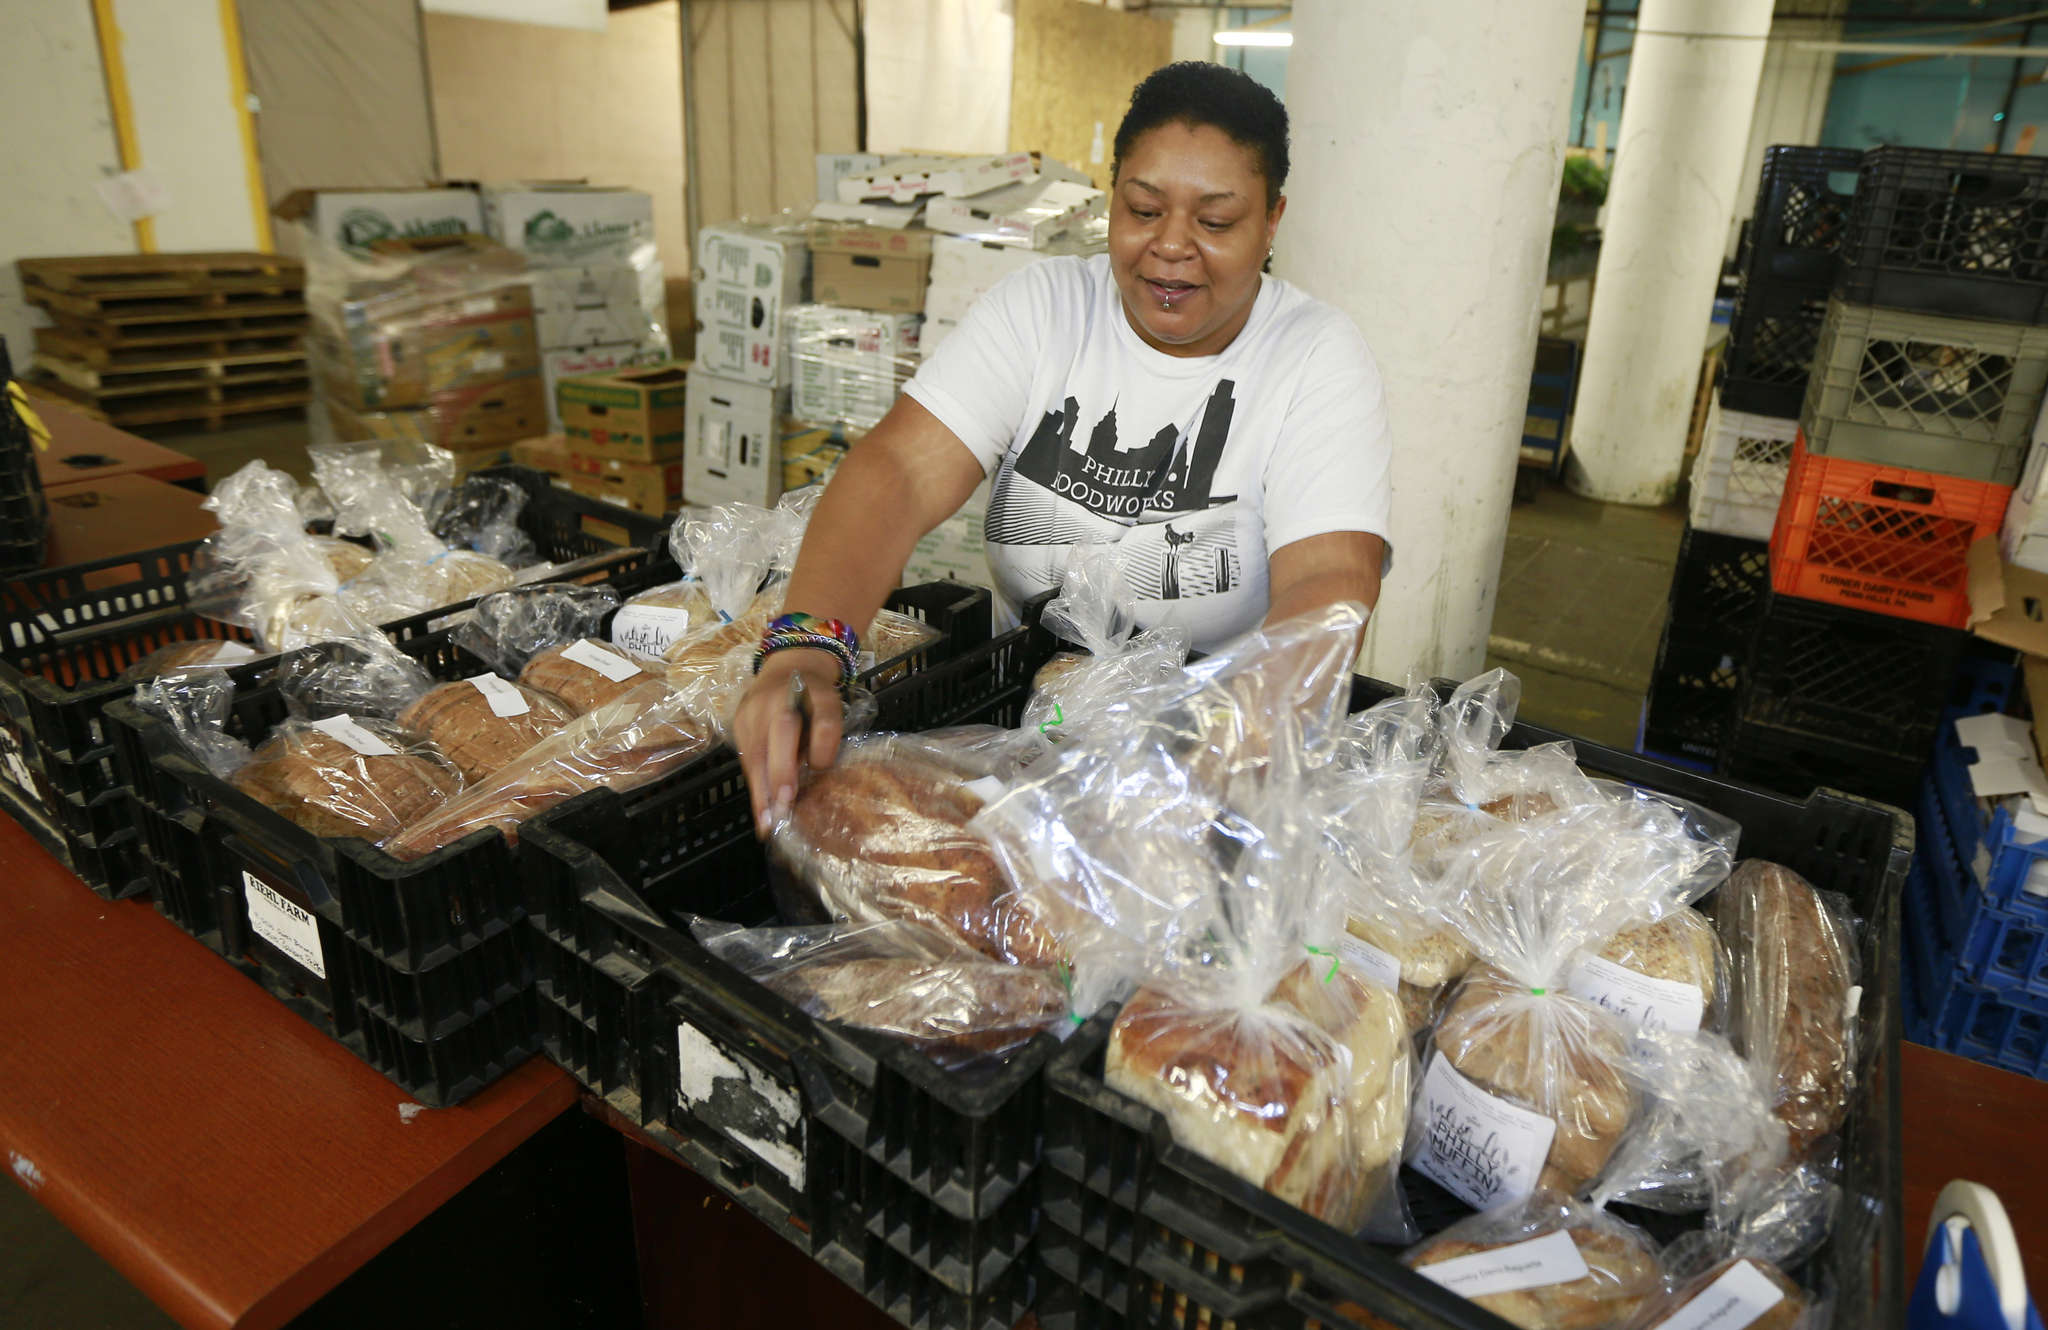 Tia Sykes sorts bread in Foodworks´ warehouse space in North Philadelphia.